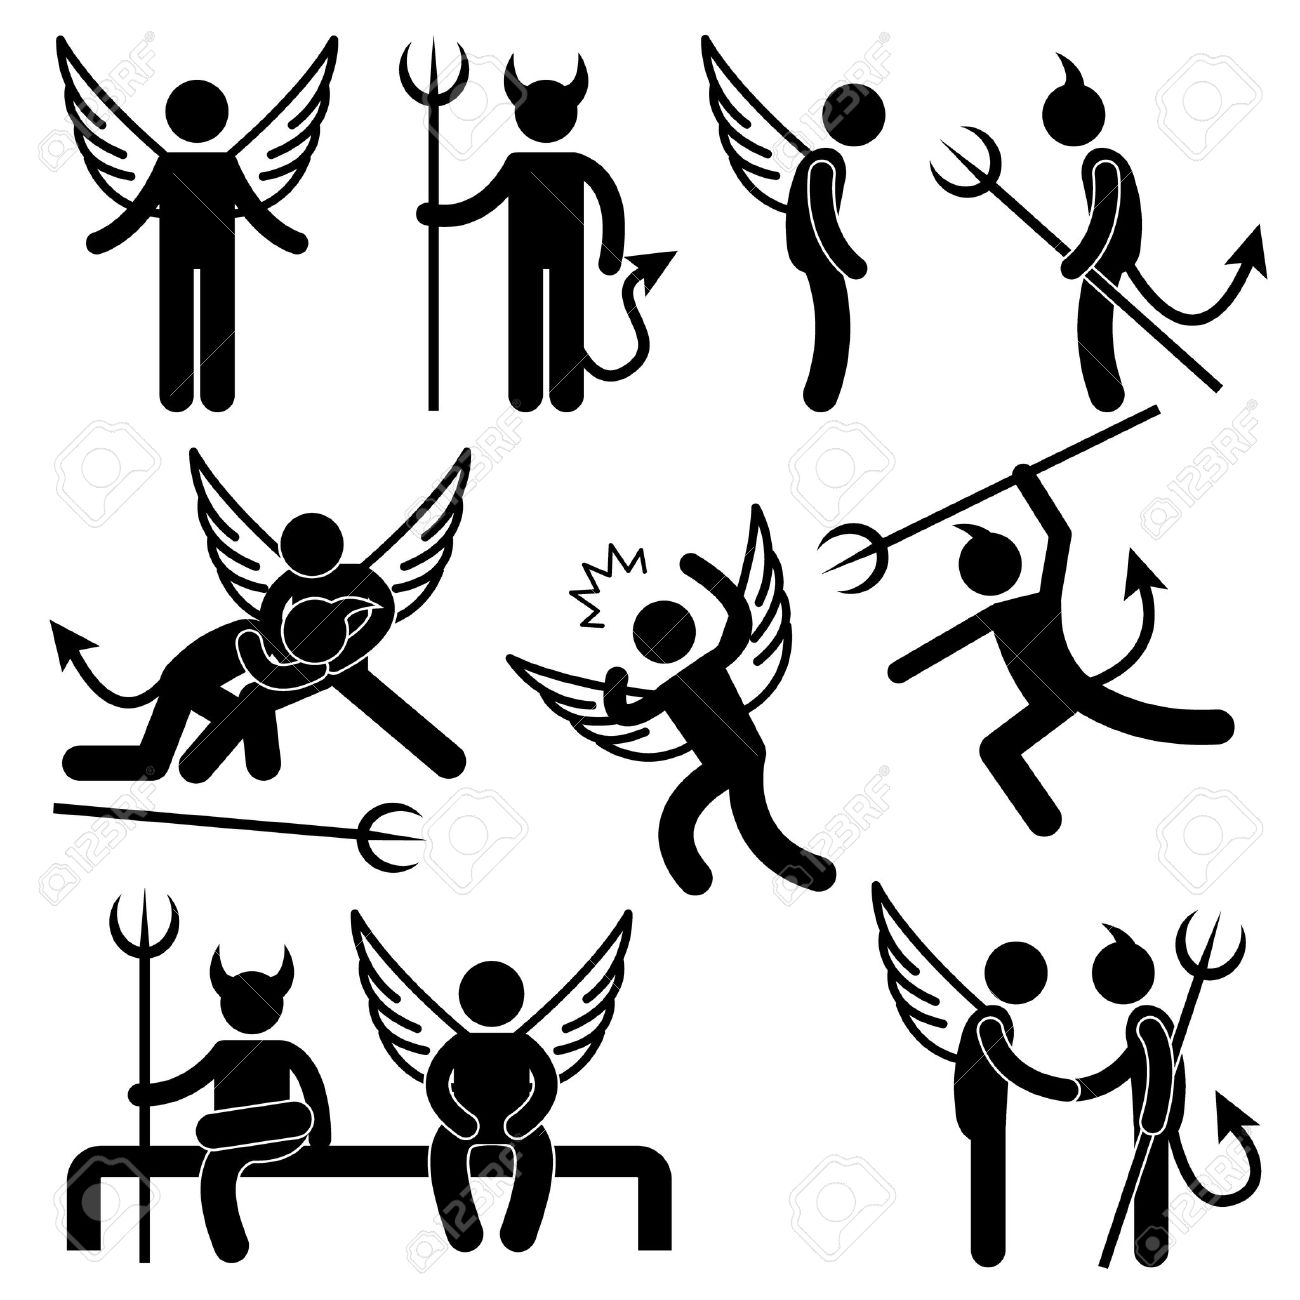 37,866 Devils Stock Vector Illustration And Royalty Free Devils ...